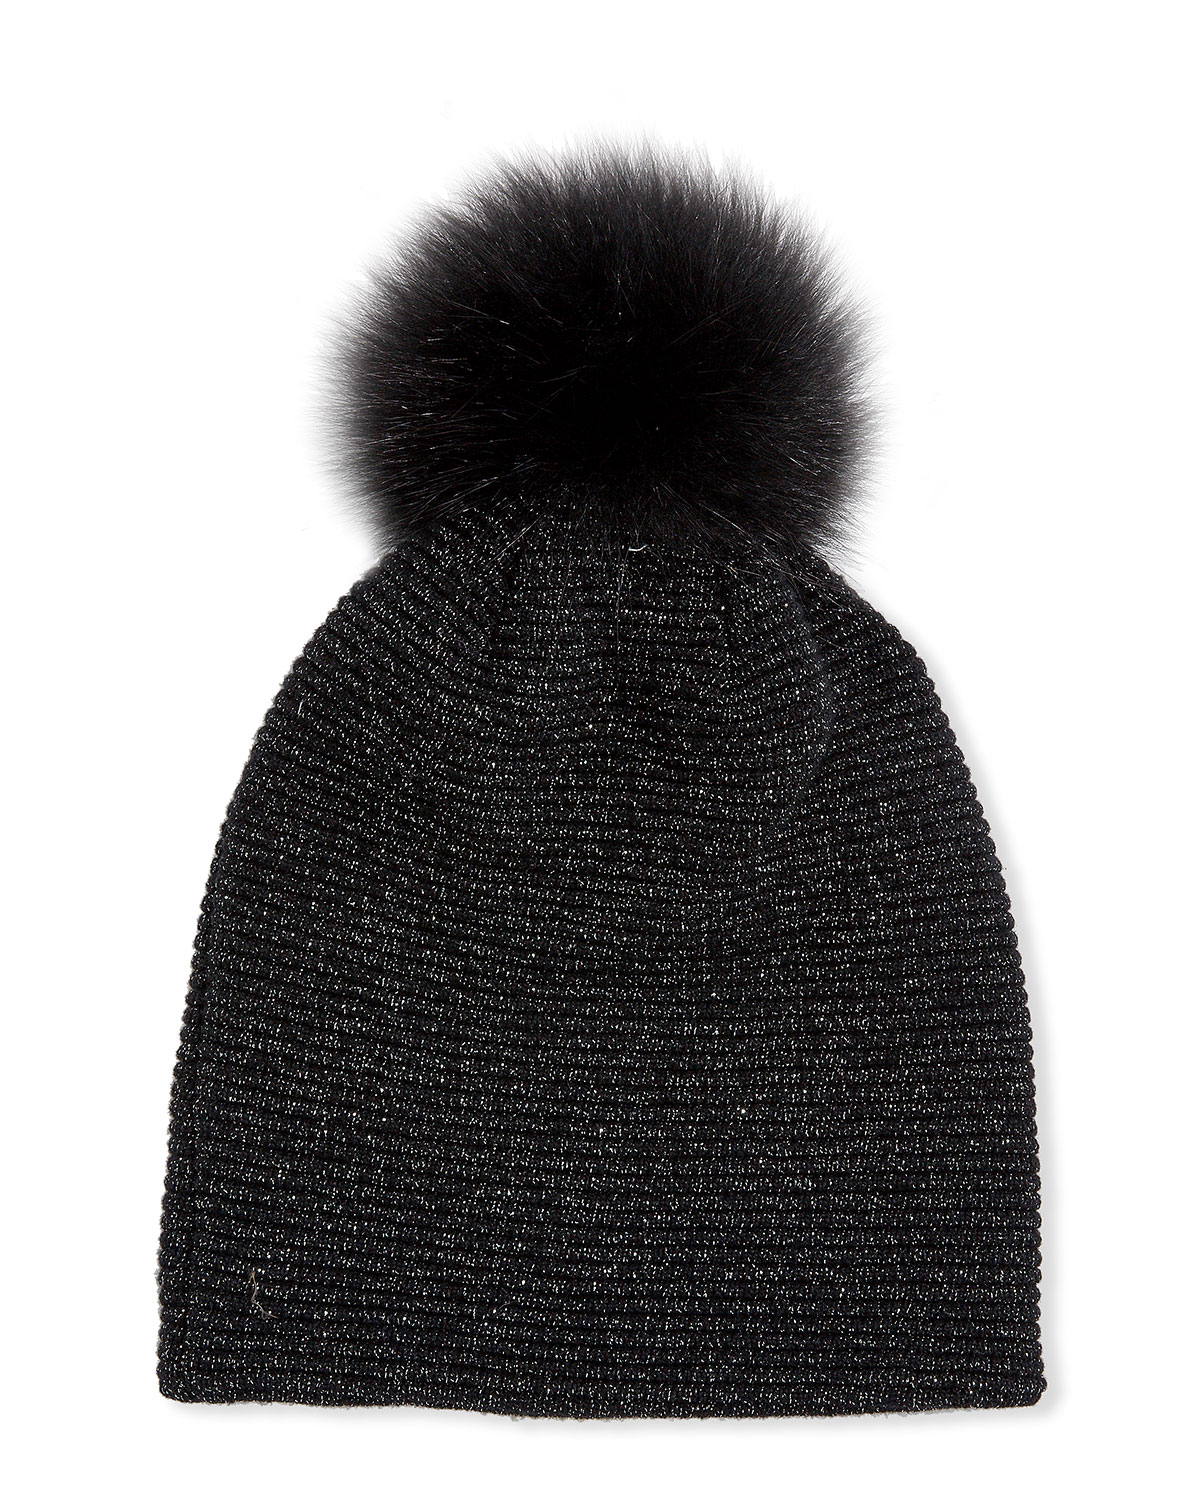 Inverni MERINO WOOL-BLEND METALLIC KNIT BEANIE HAT W/ FOX FUR POMPOM